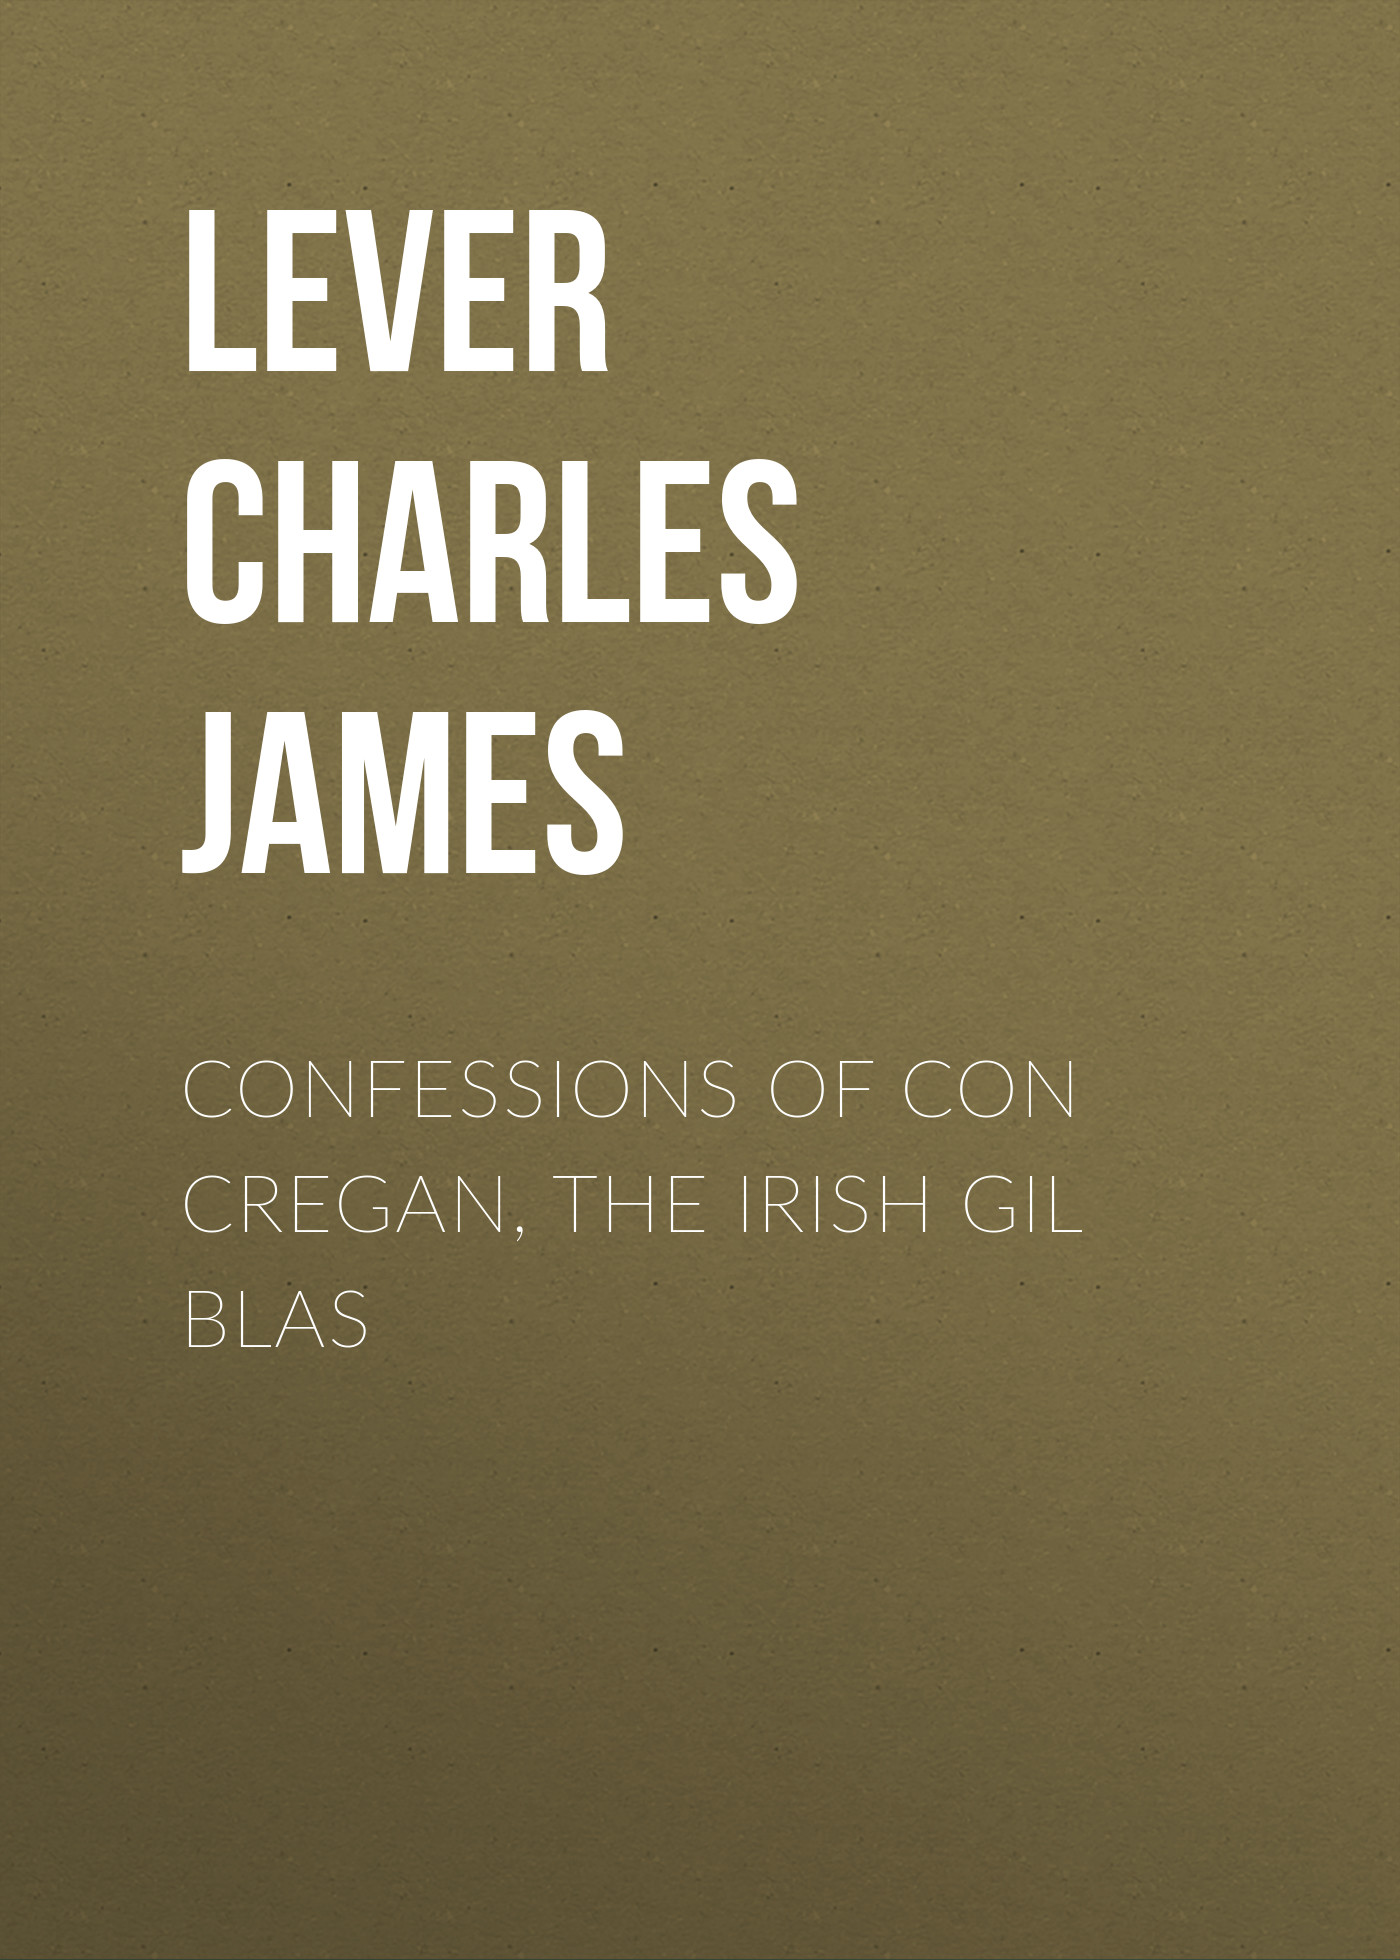 Lever Charles James Confessions Of Con Cregan, the Irish Gil Blas купить недорого в Москве